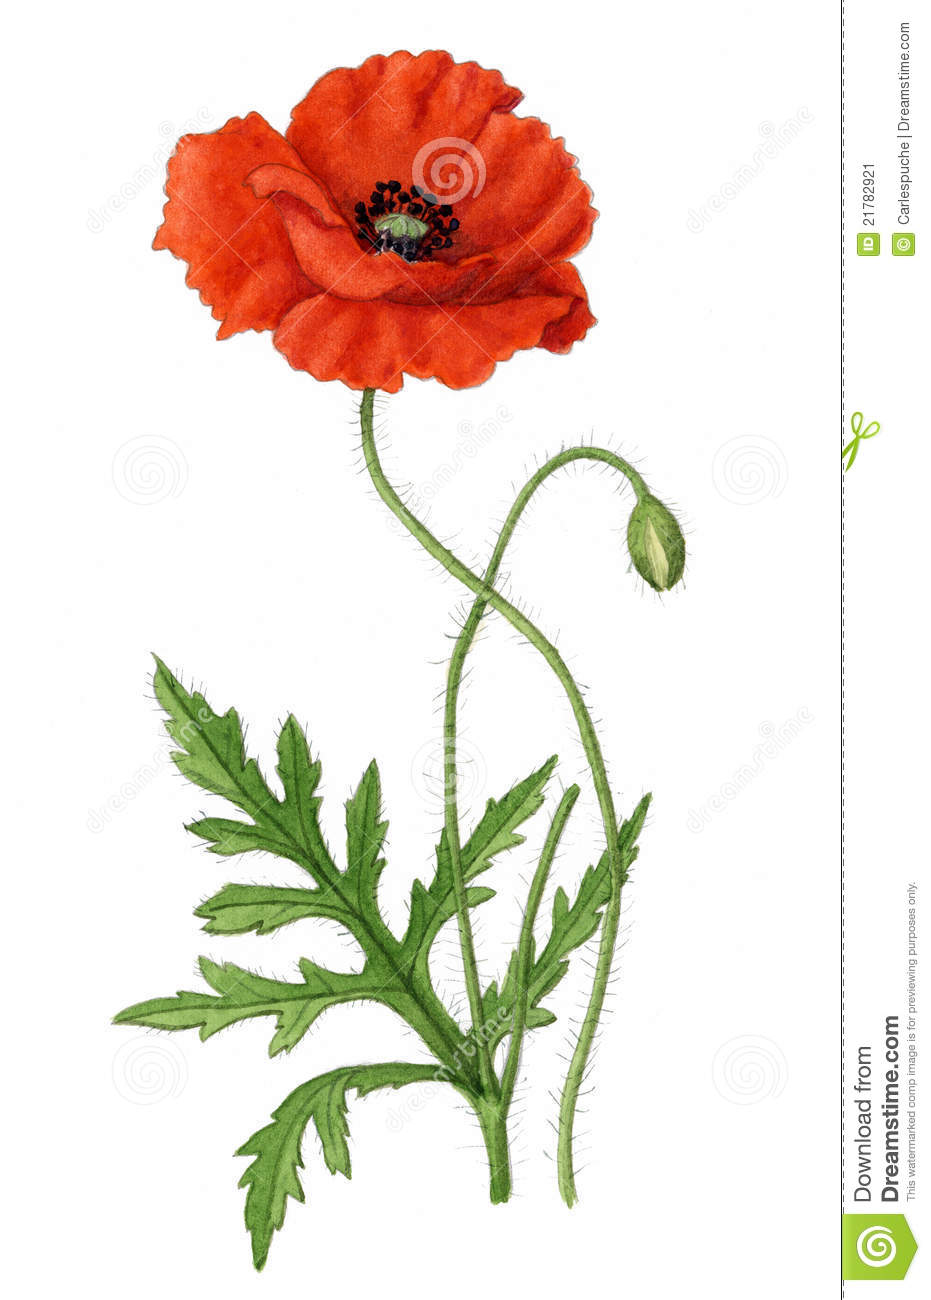 Drawn poppy vintage Flower with with open leaves